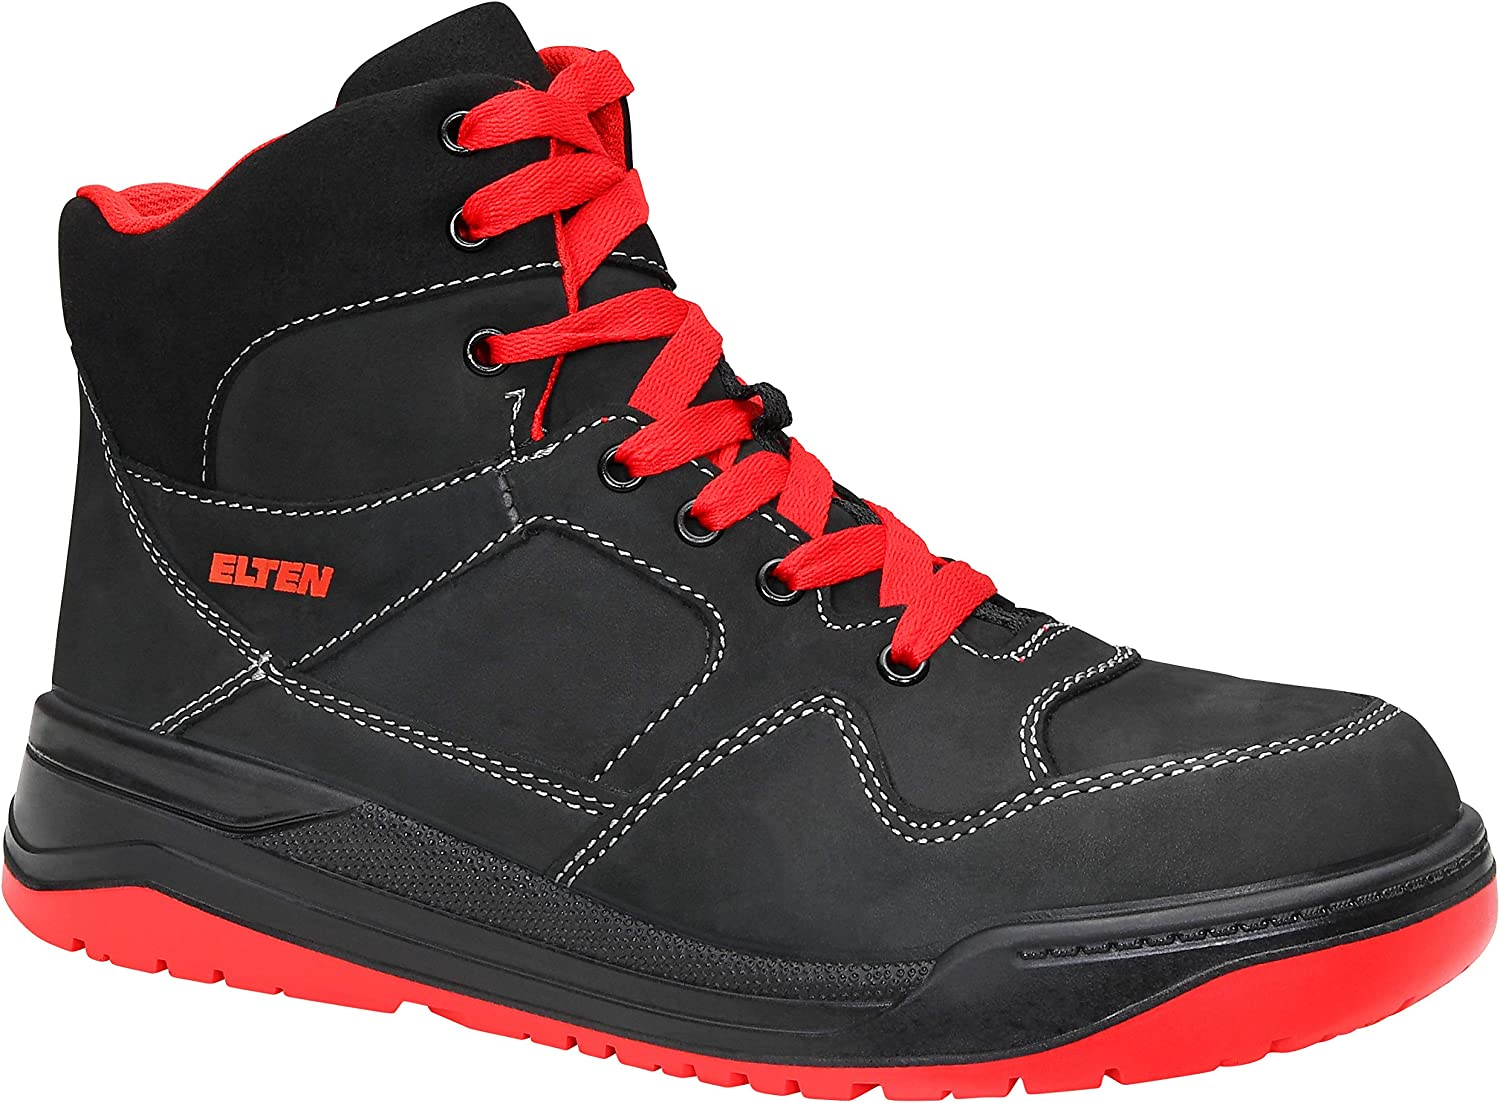 Elten Maverick Cool Basketball style  Nubuck Leather Safety Trainer Boot With Steel Toe Cap, Black Red Mid Textile Lining Size 38,48